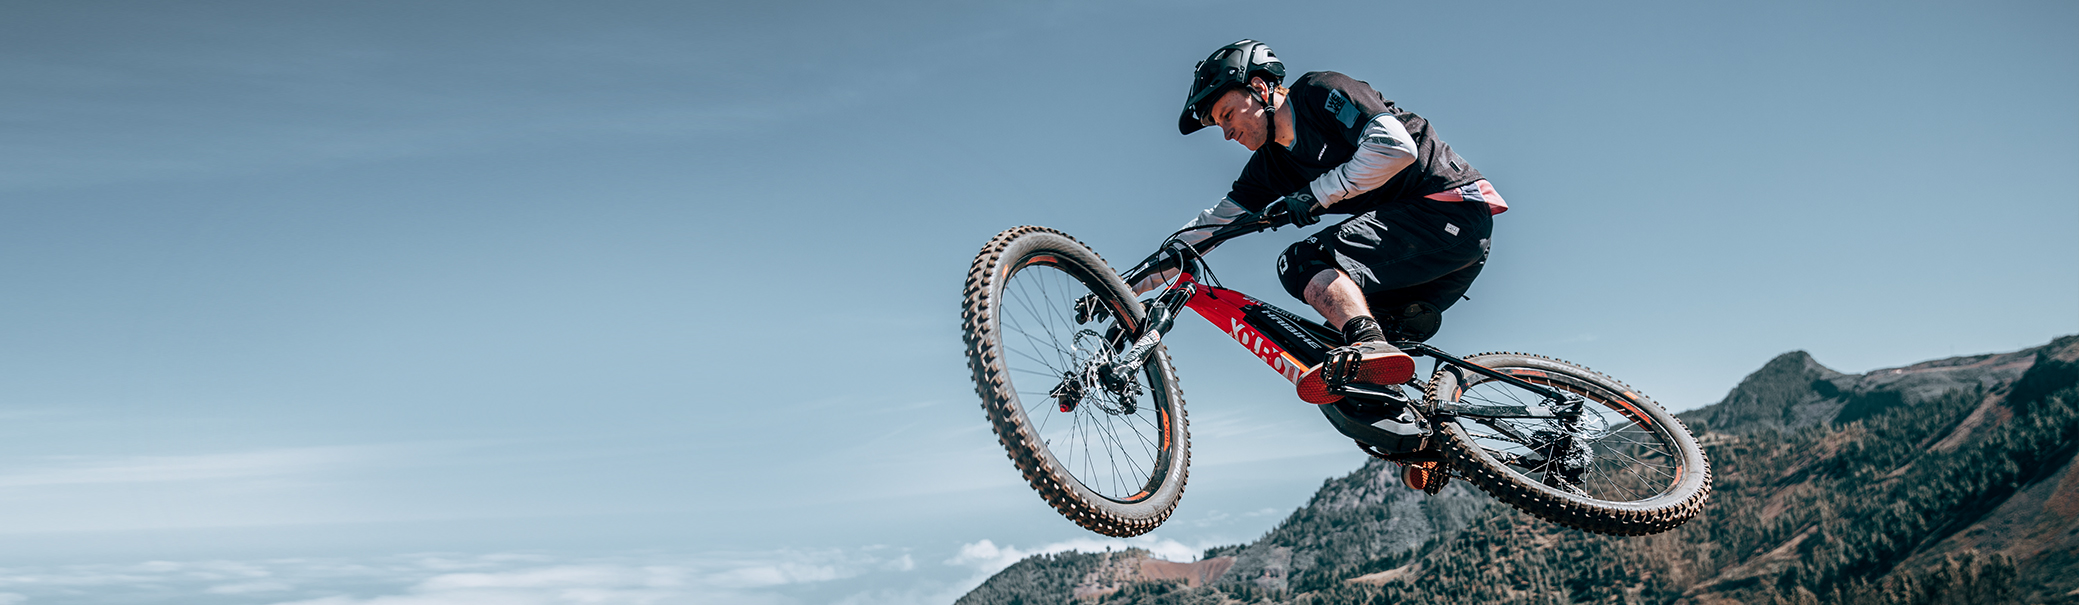 Mountain biker whipping during jump